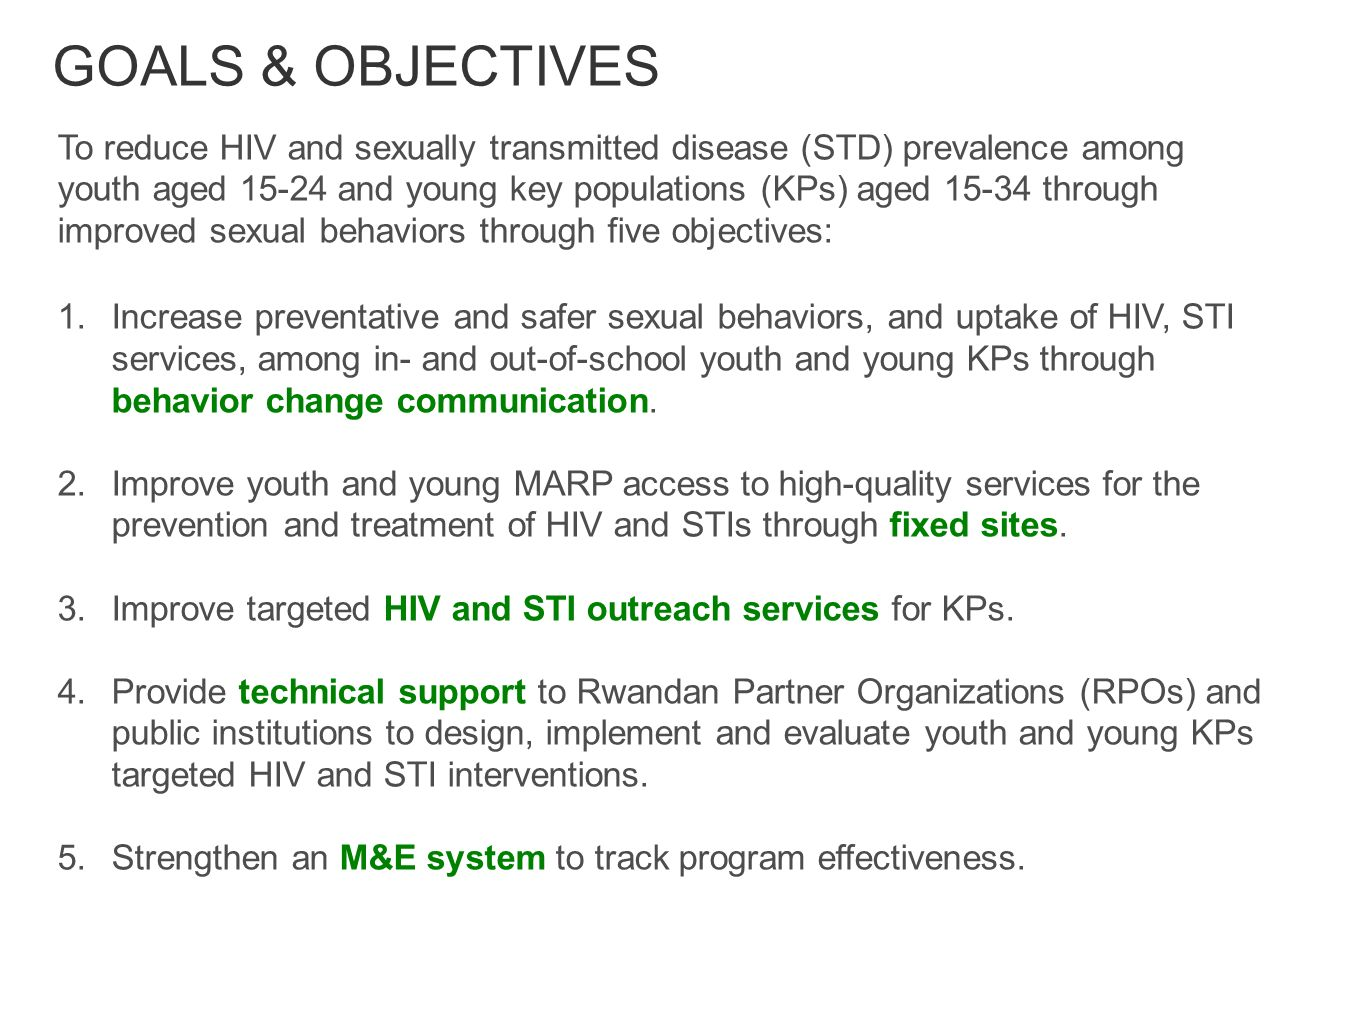 GOALS & OBJECTIVES To reduce HIV and sexually transmitted disease (STD) prevalence among youth aged and young key populations (KPs) aged through improved sexual behaviors through five objectives: 1.Increase preventative and safer sexual behaviors, and uptake of HIV, STI services, among in- and out-of-school youth and young KPs through behavior change communication.